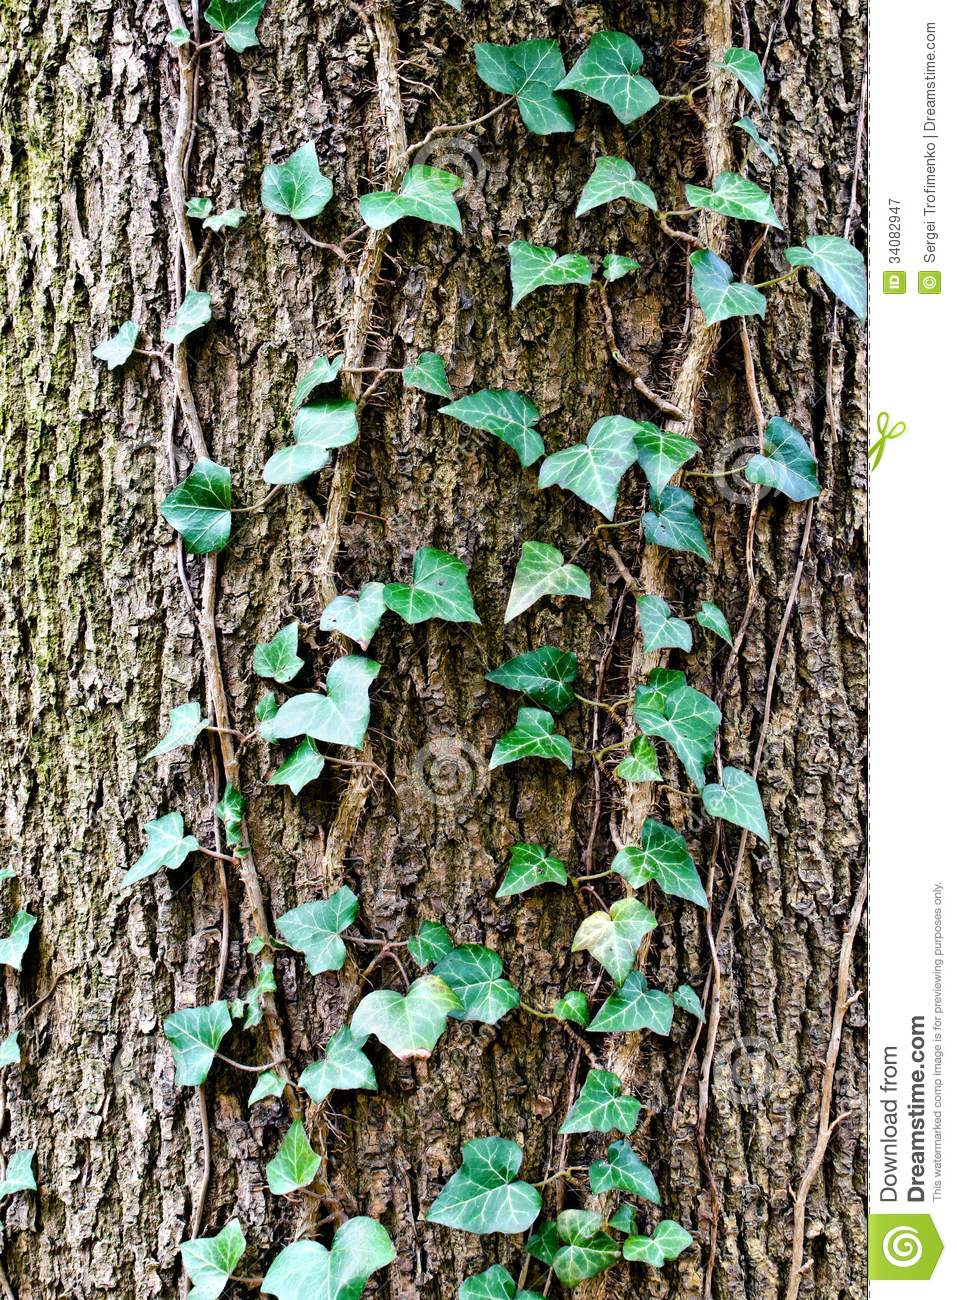 Ivy Ordinary Or Ivy Climbing (lat  Hedera Helix) To The Trunk Of The